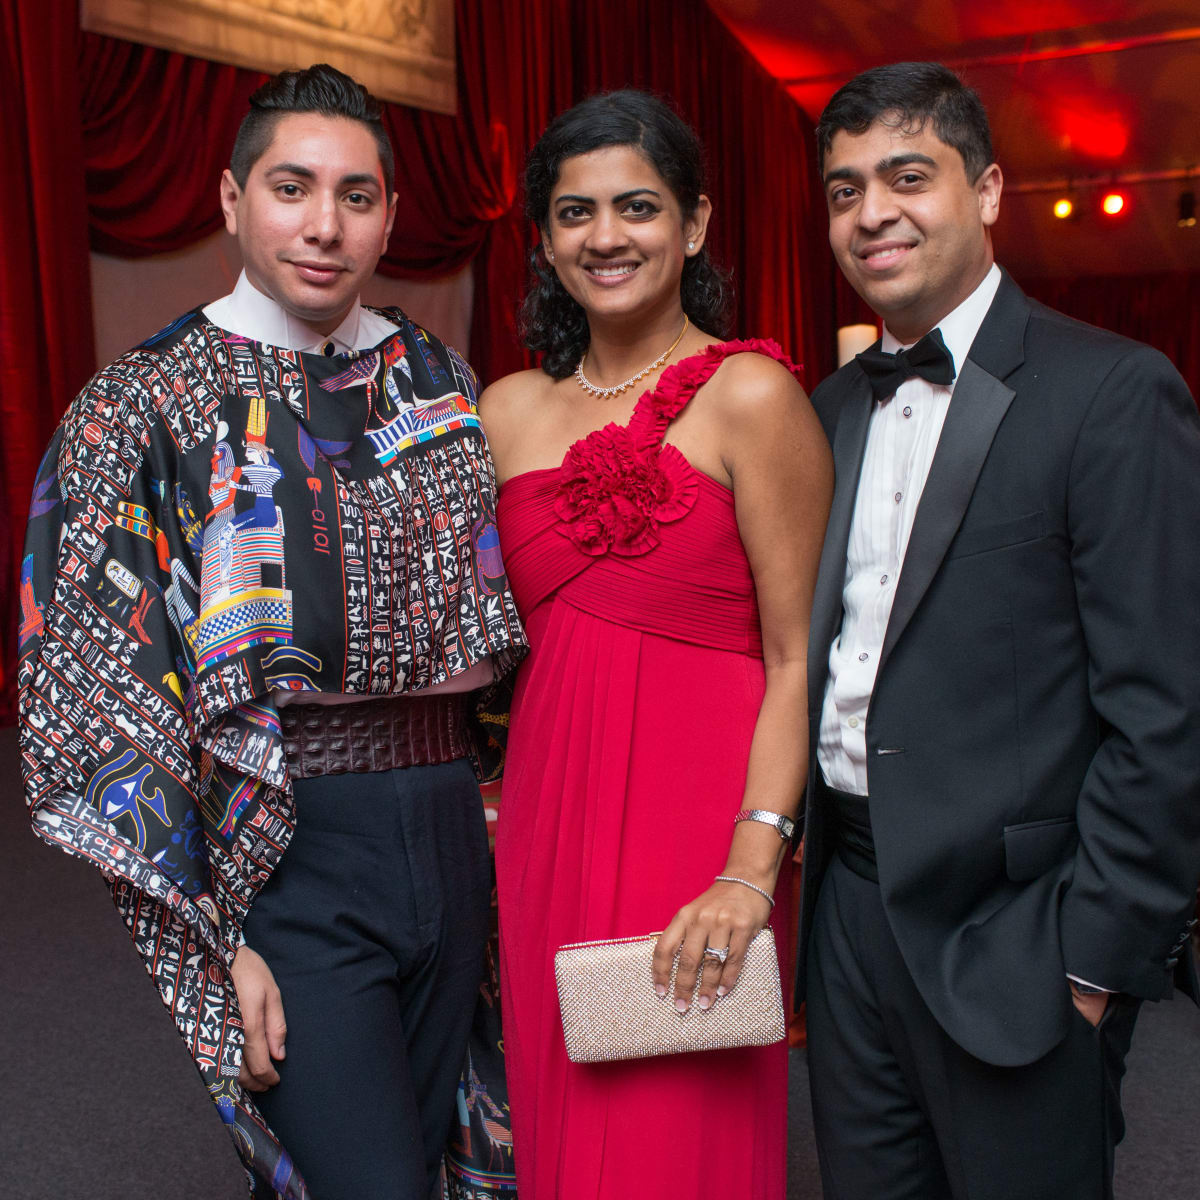 News, Shelby, HGO opening night, Oct. 2015, Christian Miranda, Ishwaria Subbiah, Vivek Subbiah